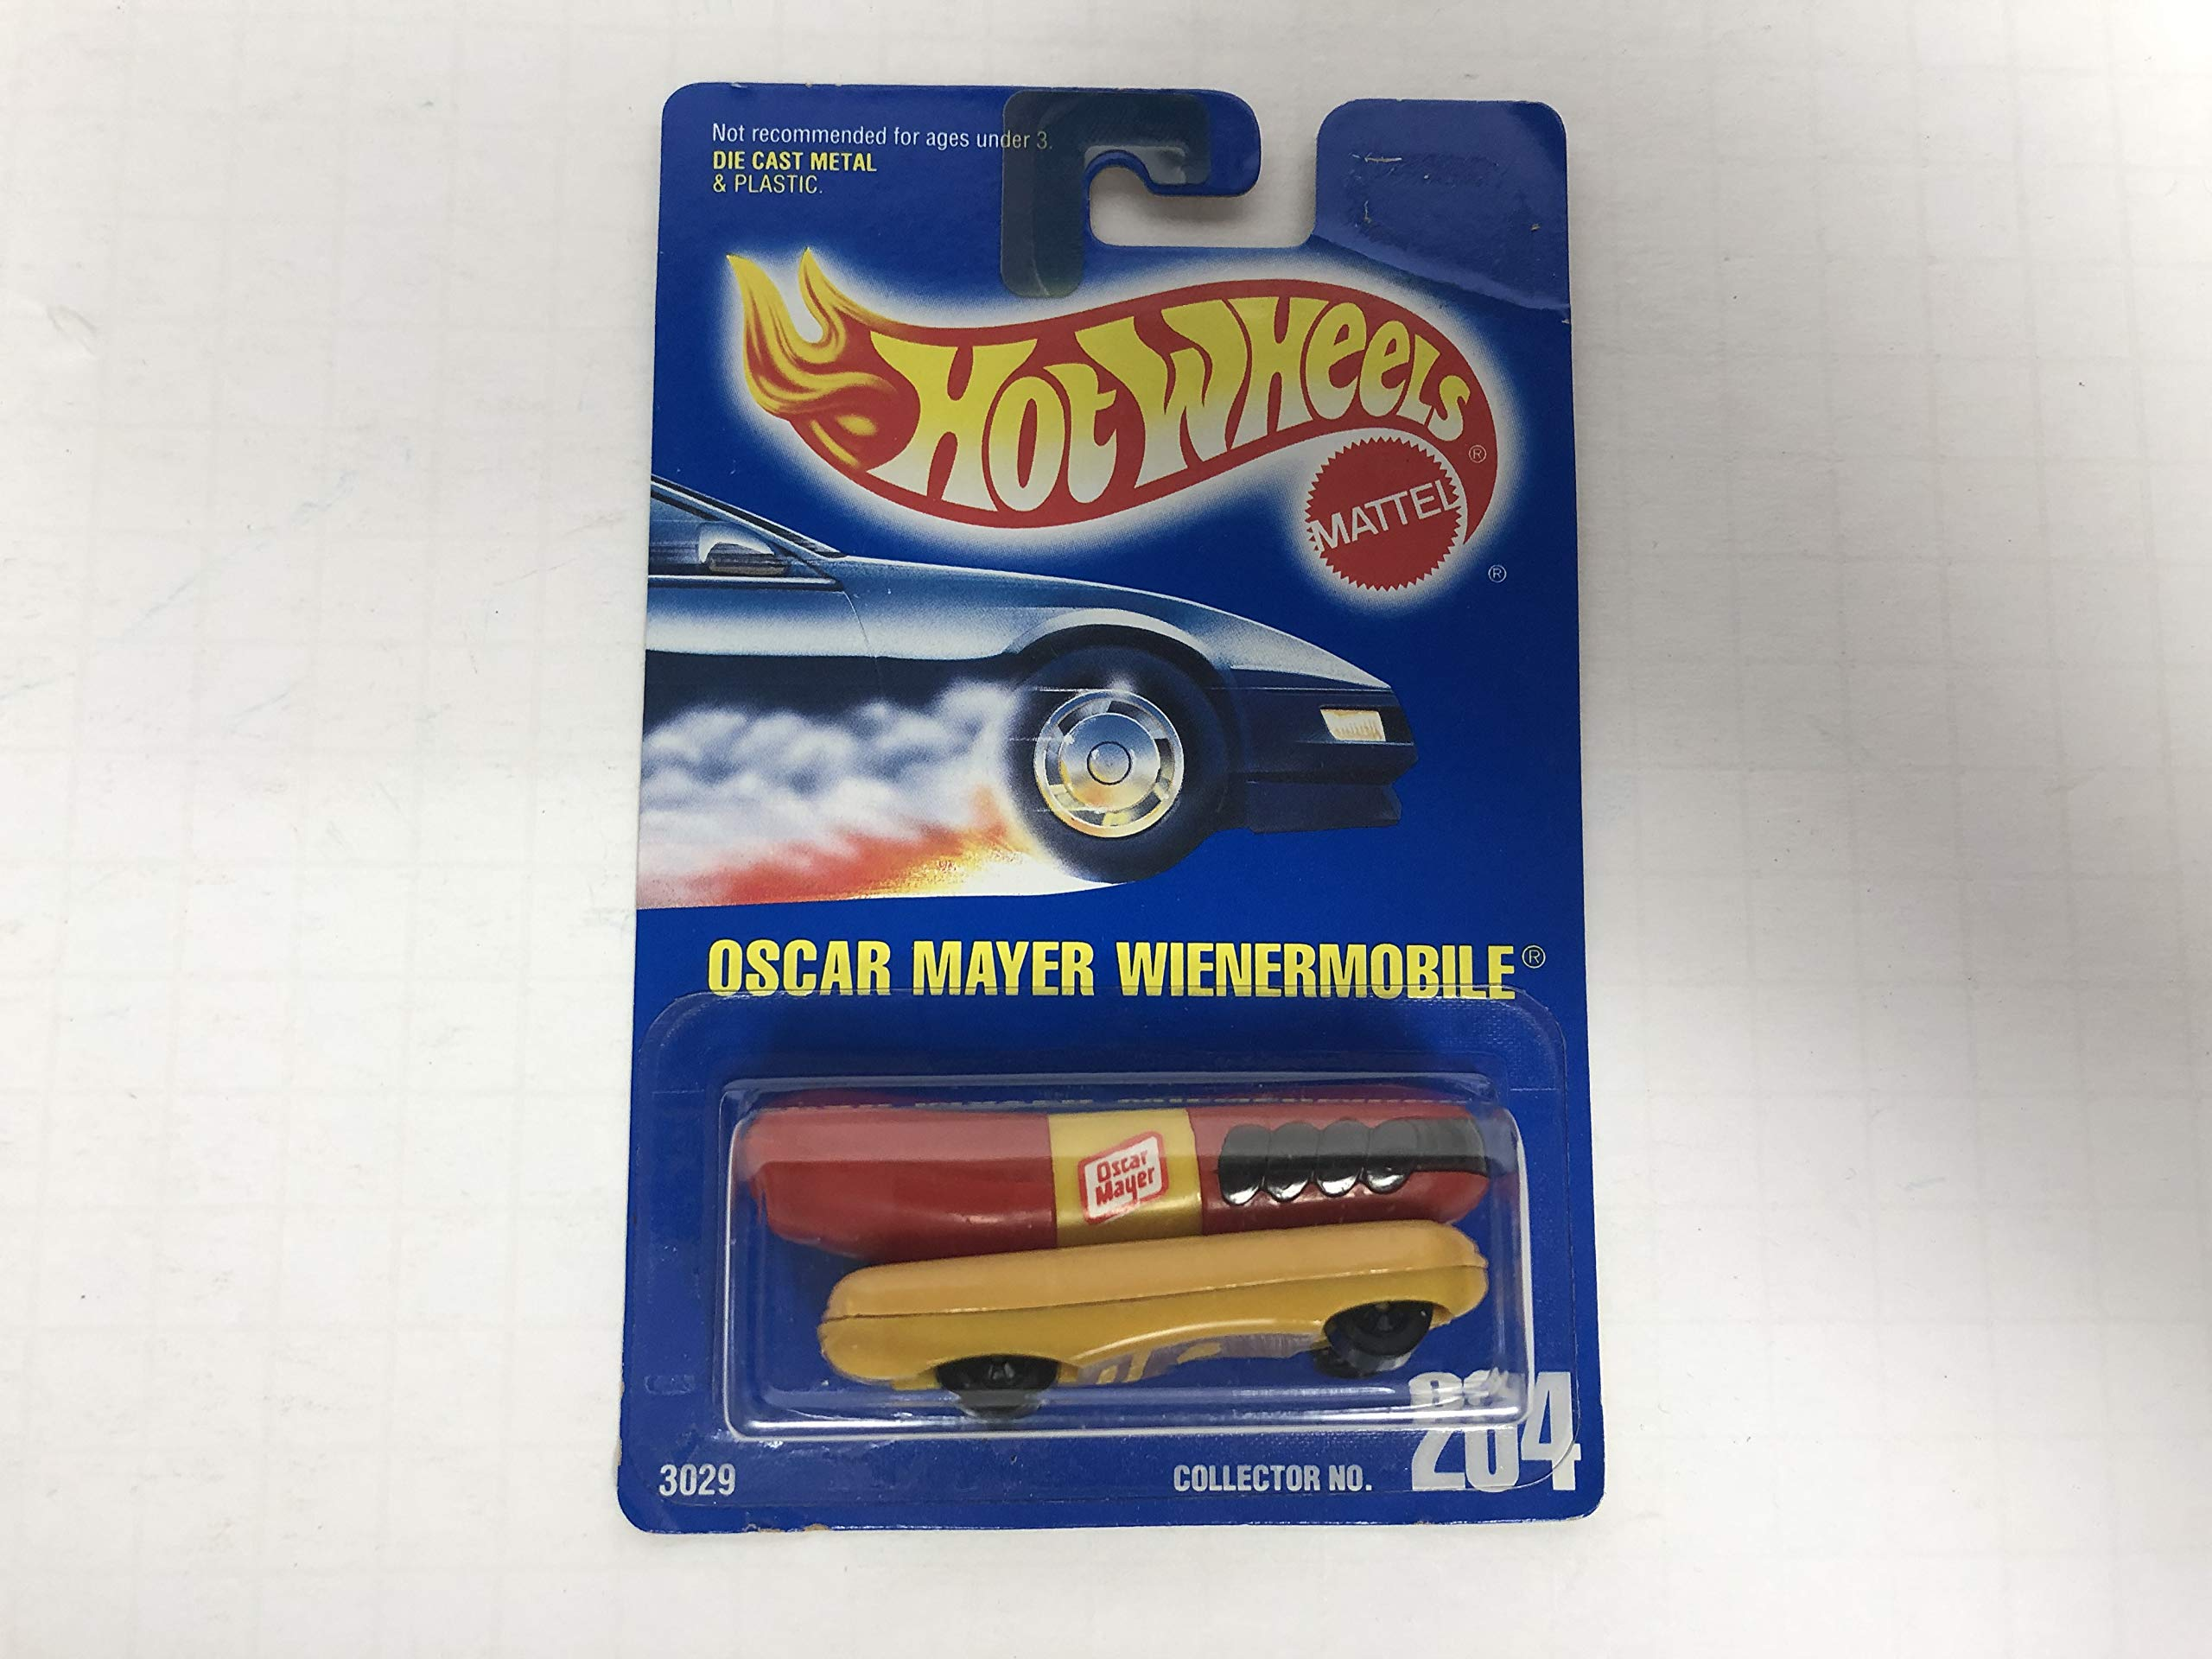 OSCAR MAYER WIENERMOBILE 1992 Hot Wheels Model Series No. 204 diecast car